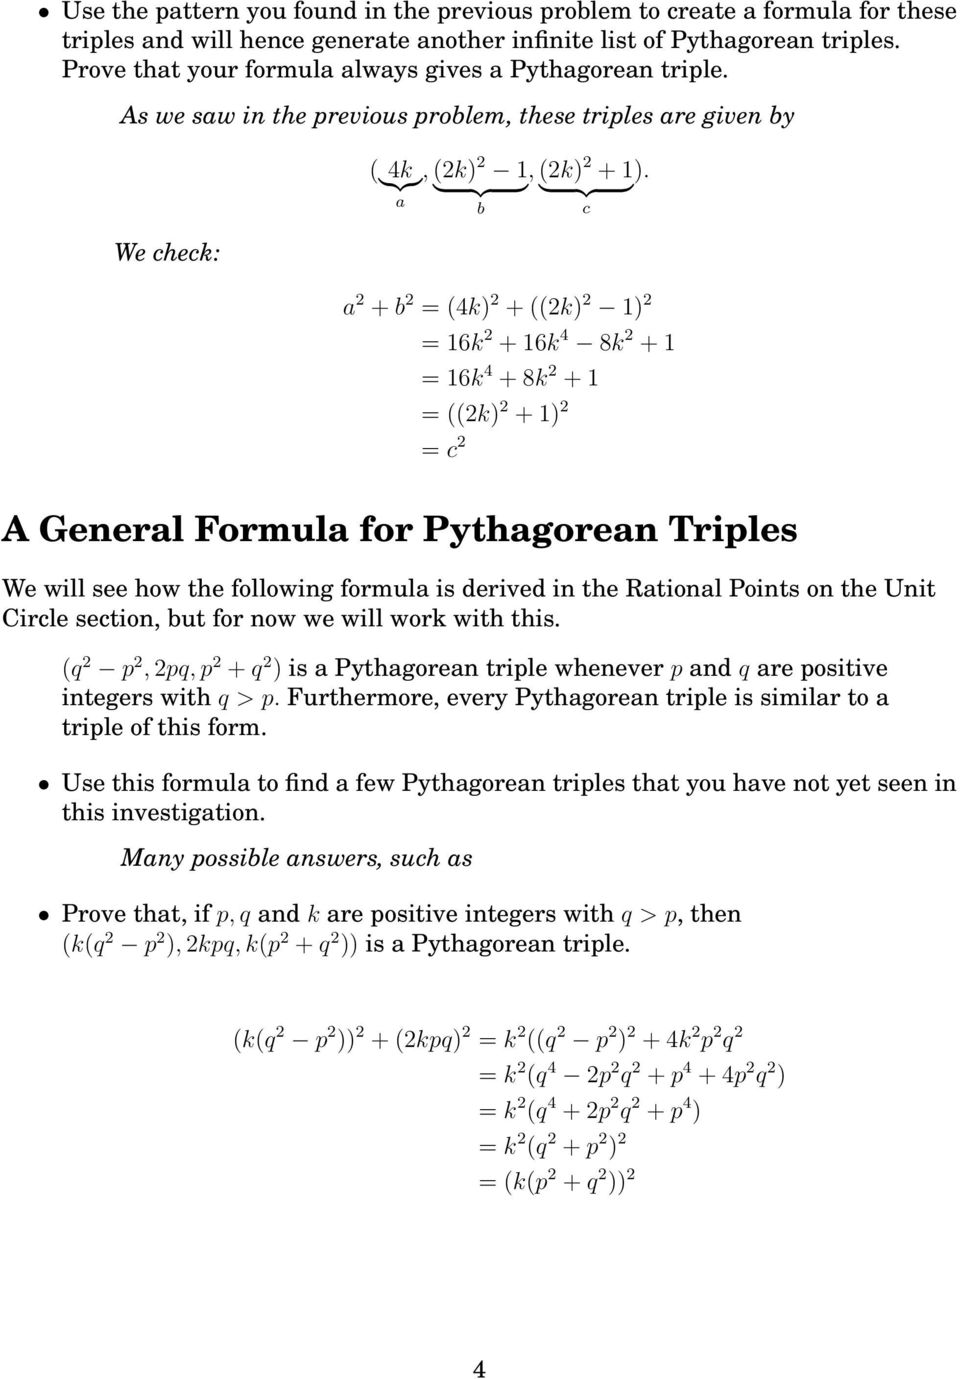 } {{ } } {{ } a b c a + b = 4k) + k) 1) = 16k + 16k 4 8k + 1 = 16k 4 + 8k + 1 = k) + 1) = c A General Formula for Pythagorean Triles We will see how the following formula is derived in the Rational